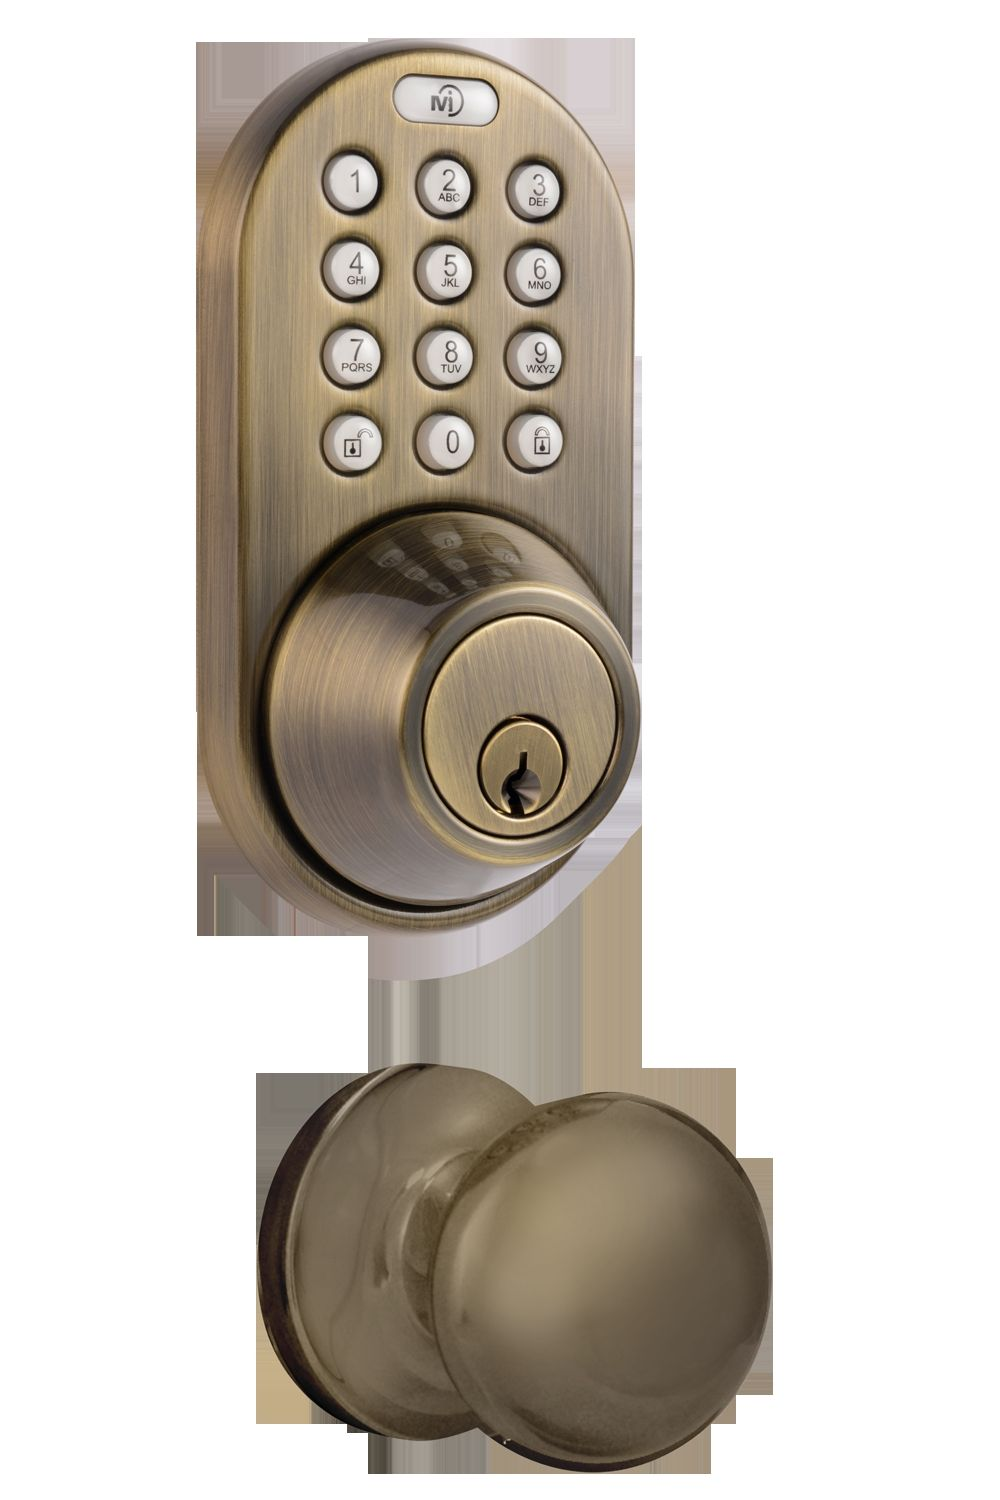 Remote Controlled Keyless Entry With Door Knob